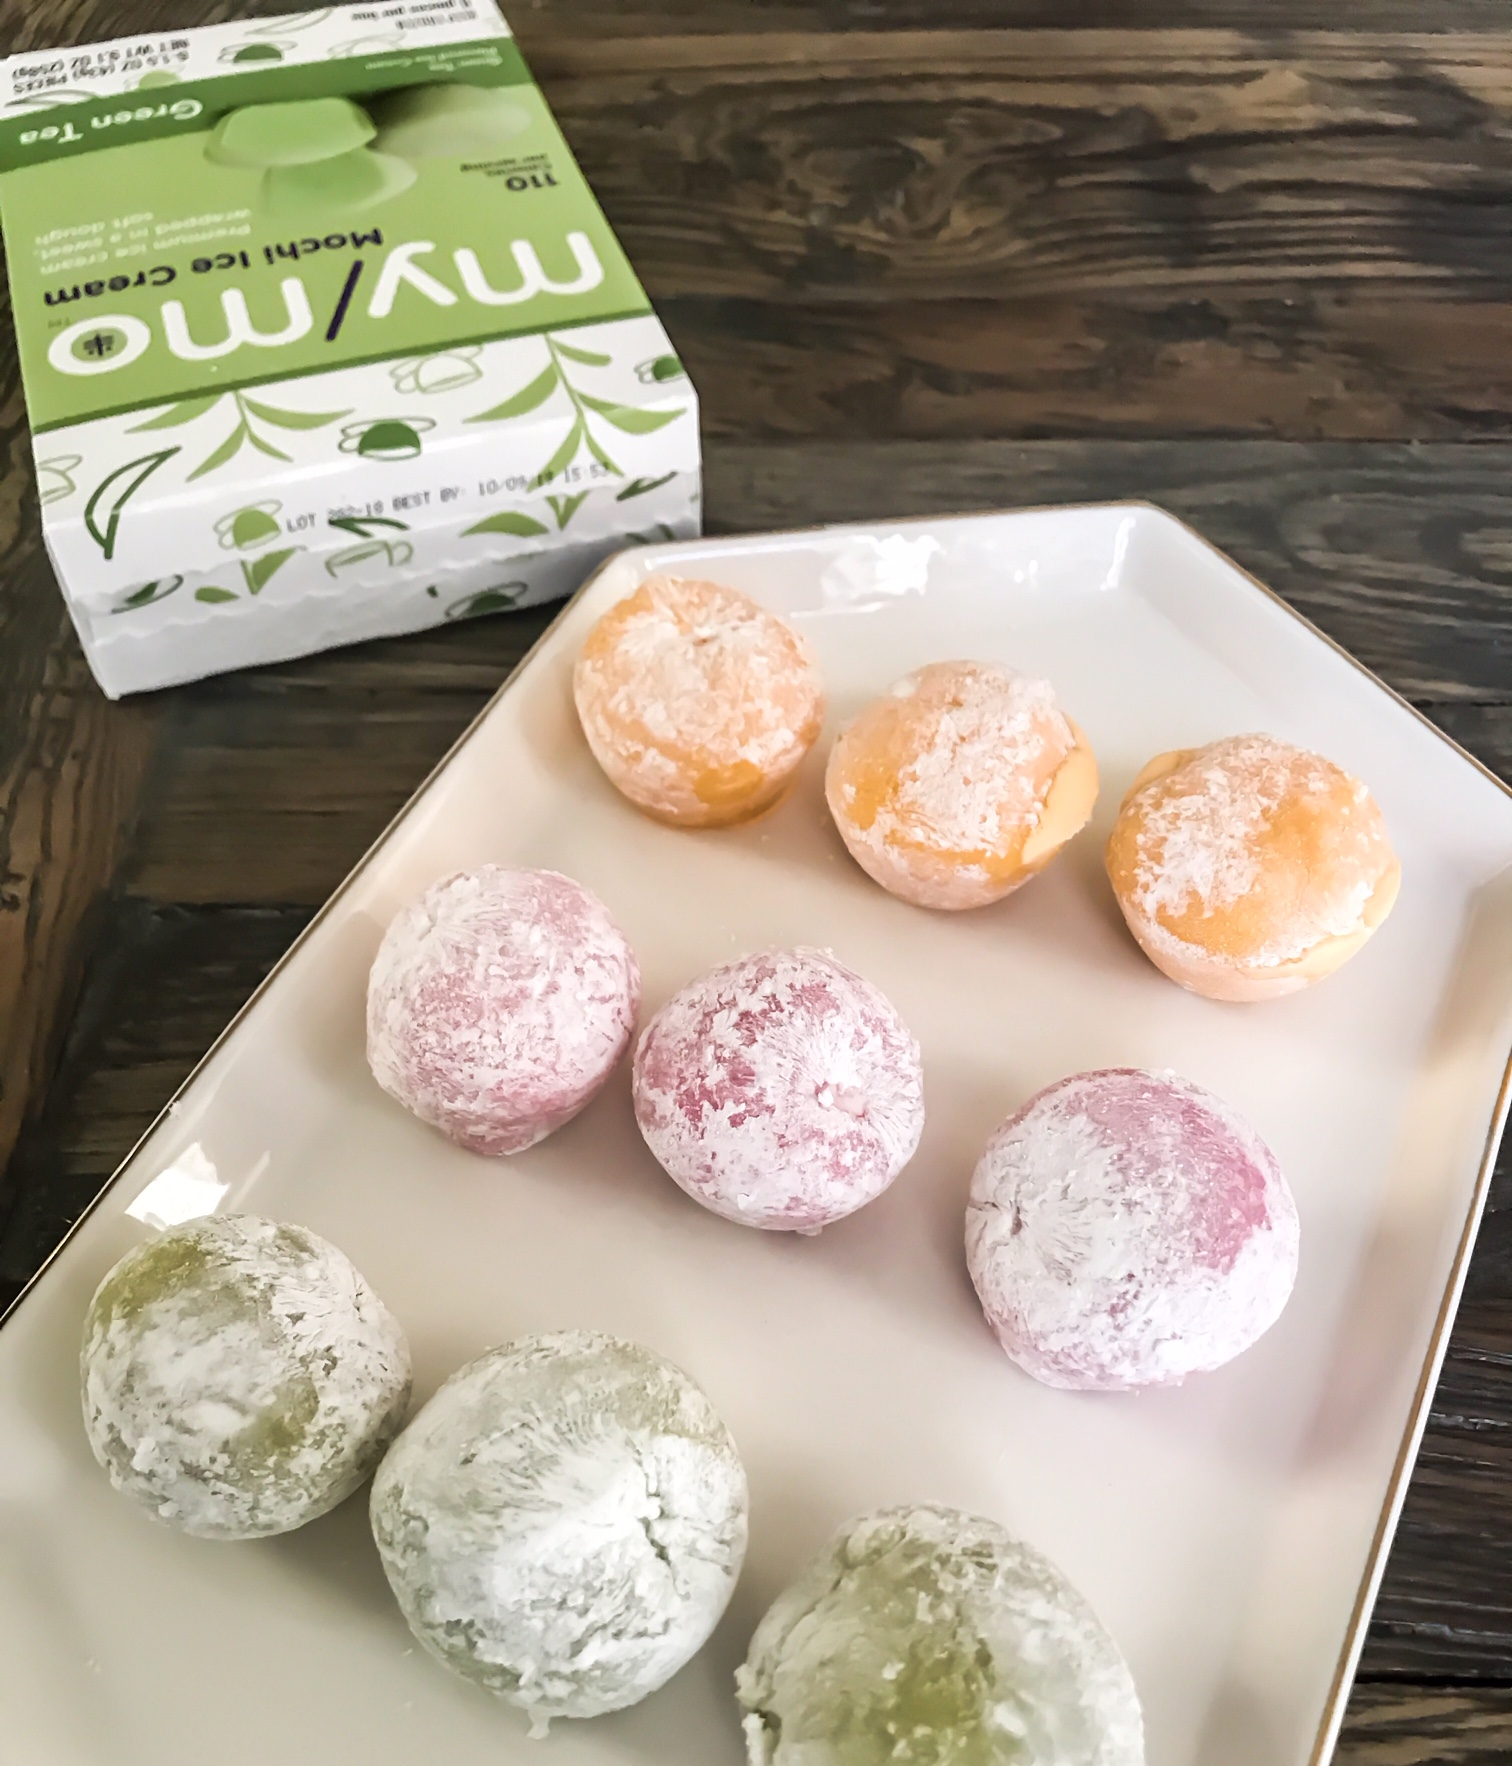 My/Mo Mochi Ice Cream. Tips For Hosting During The Holidays. How To Create A Memorable Experience For Your Guests At Your Home. ScentSicles instant Christmas Aroma, My/Mo Mochie Ice Cream desserts, Cinzano Prosecco Prosecco Bellini recipe, Fran's Chocolates, Salted caramels. #sponsored #ad #edcrepeatbboxx #holiday #ideas